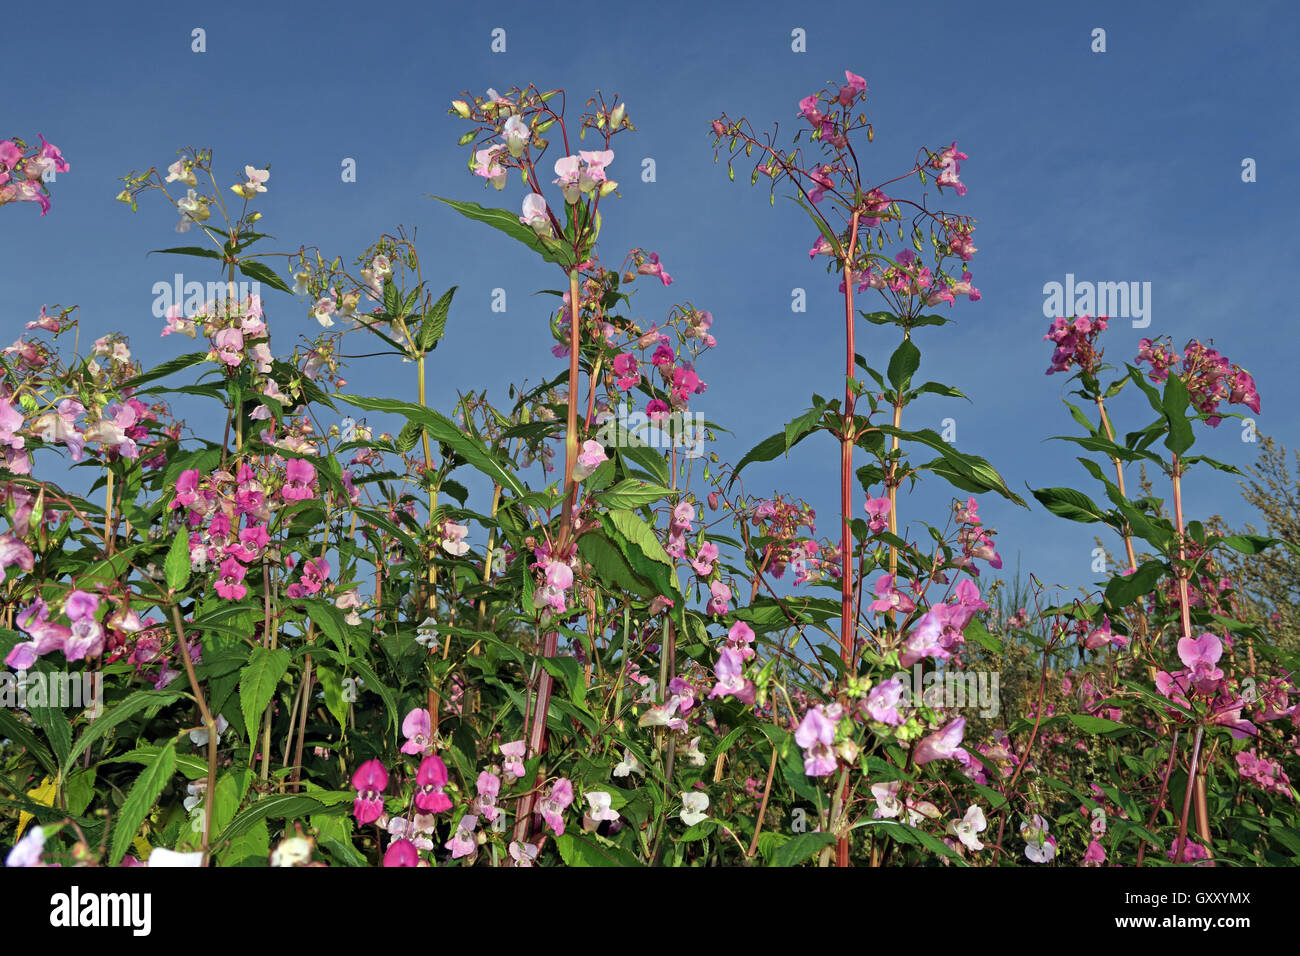 Pink Himalayan Balsam flowers, invasive weed, growing along Mersey river, Paddington Meadows, Warrington, Cheshire Stock Photo